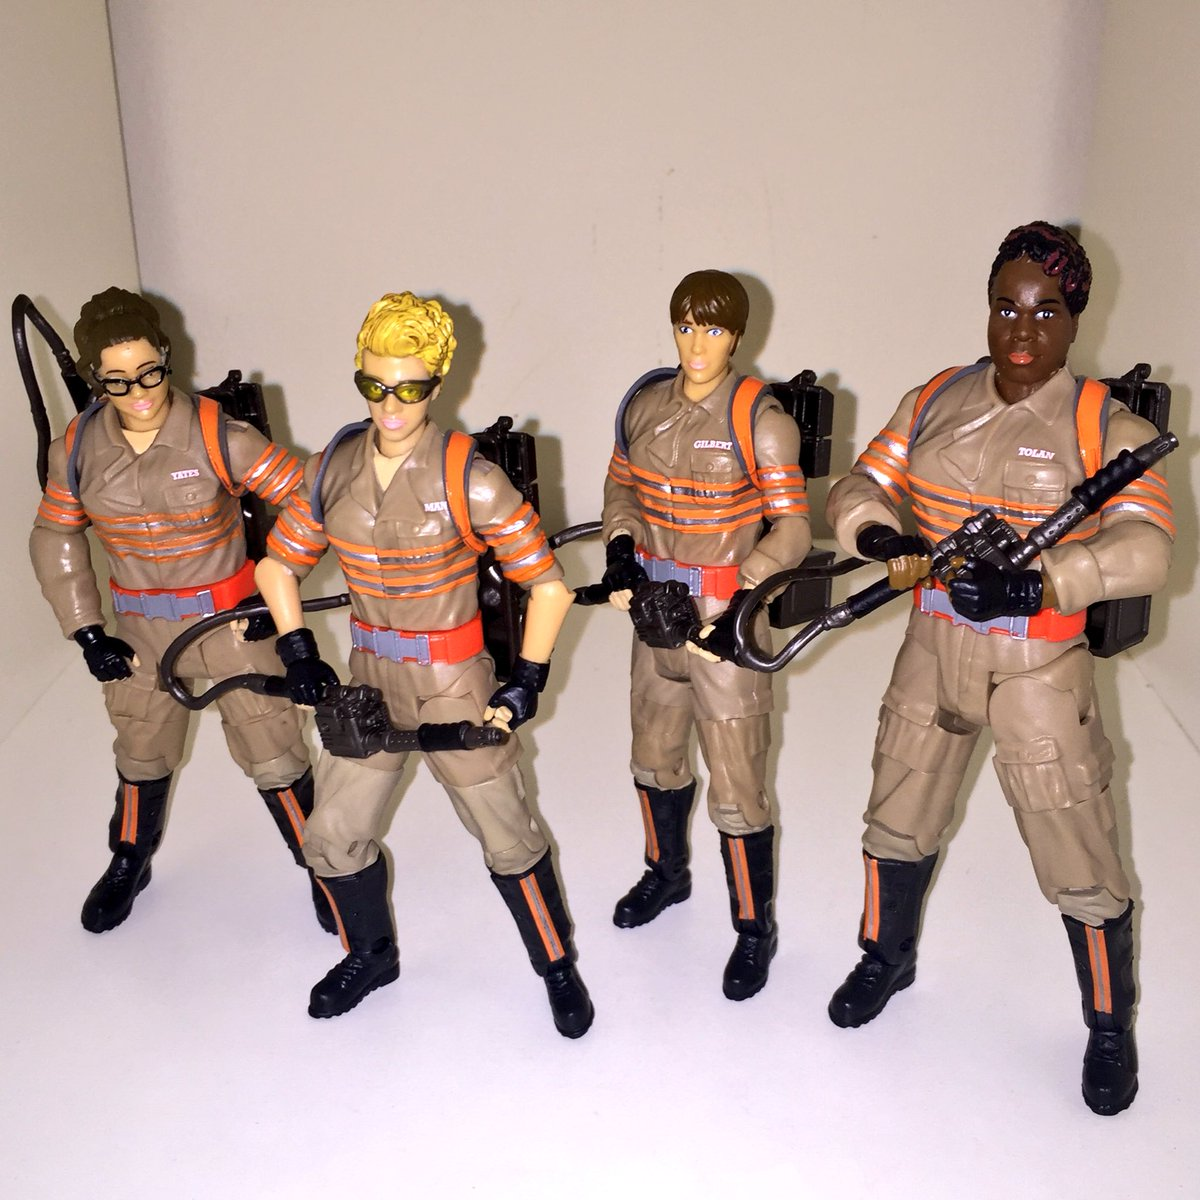 Best Ghostbuster Toys : Red on twitter quot oh no my new ghostbusters toys